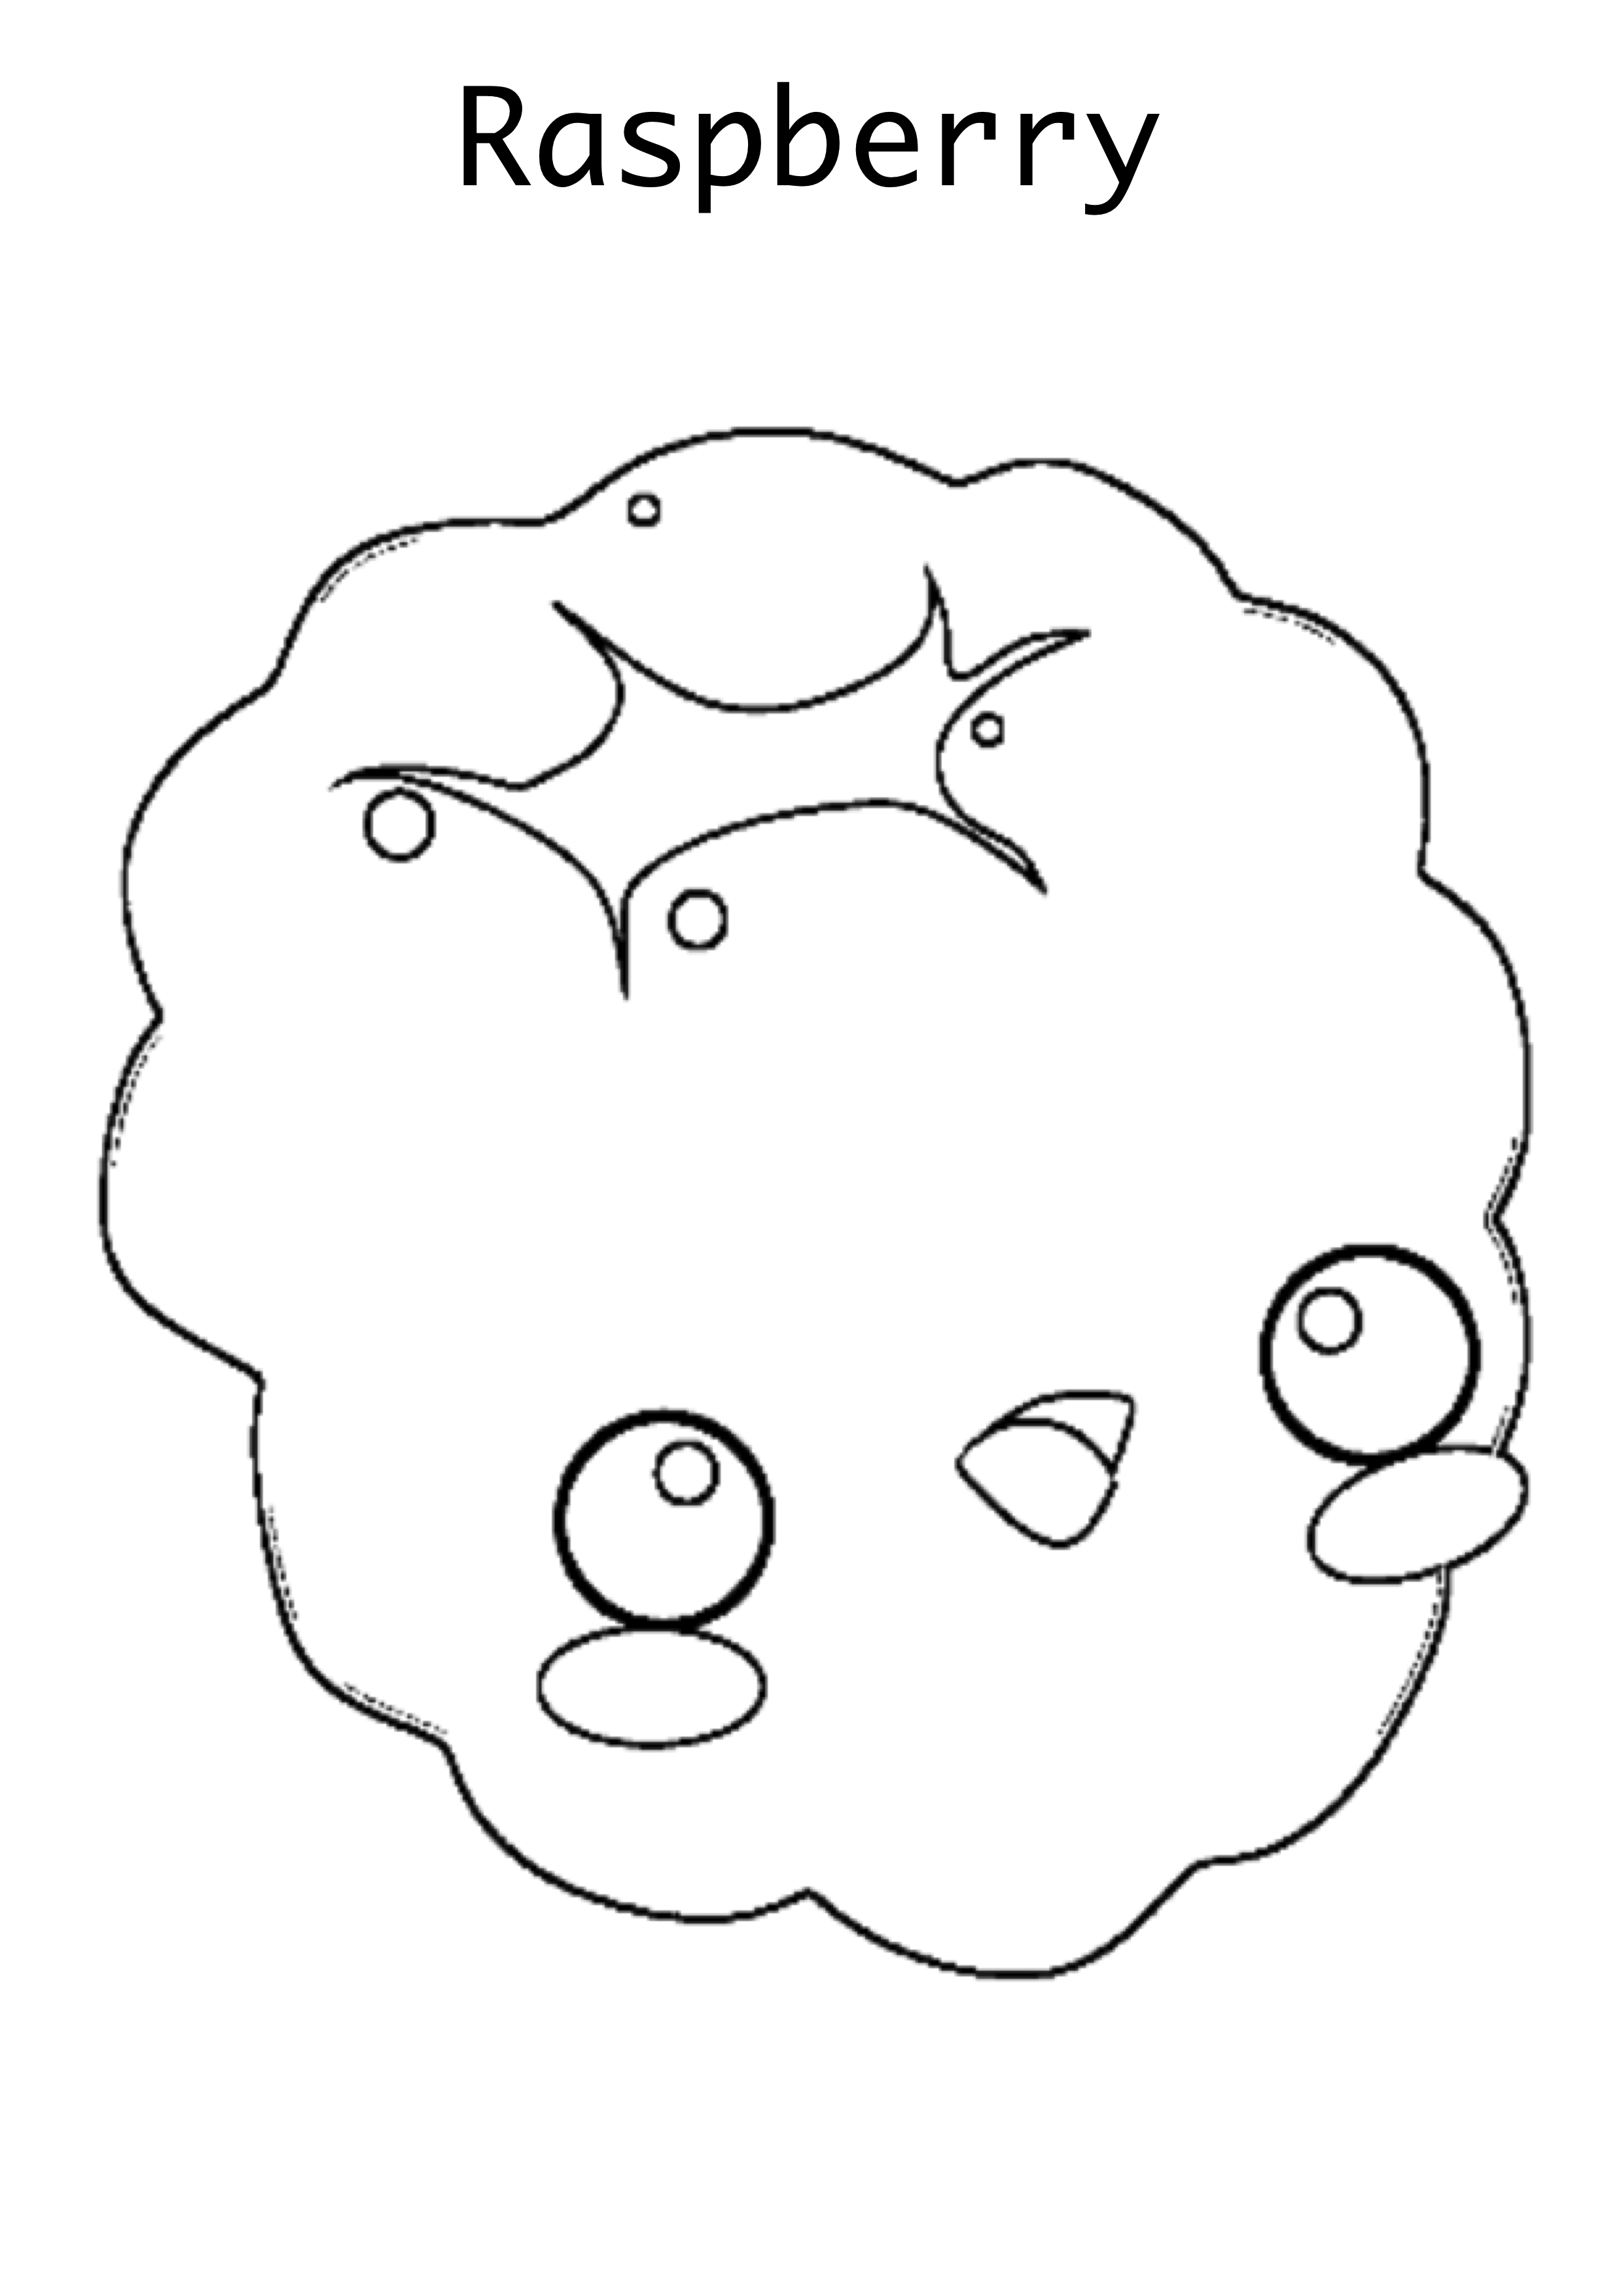 Raspberry Coloring Page Coloring Pages Fruit Coloring Pages Color